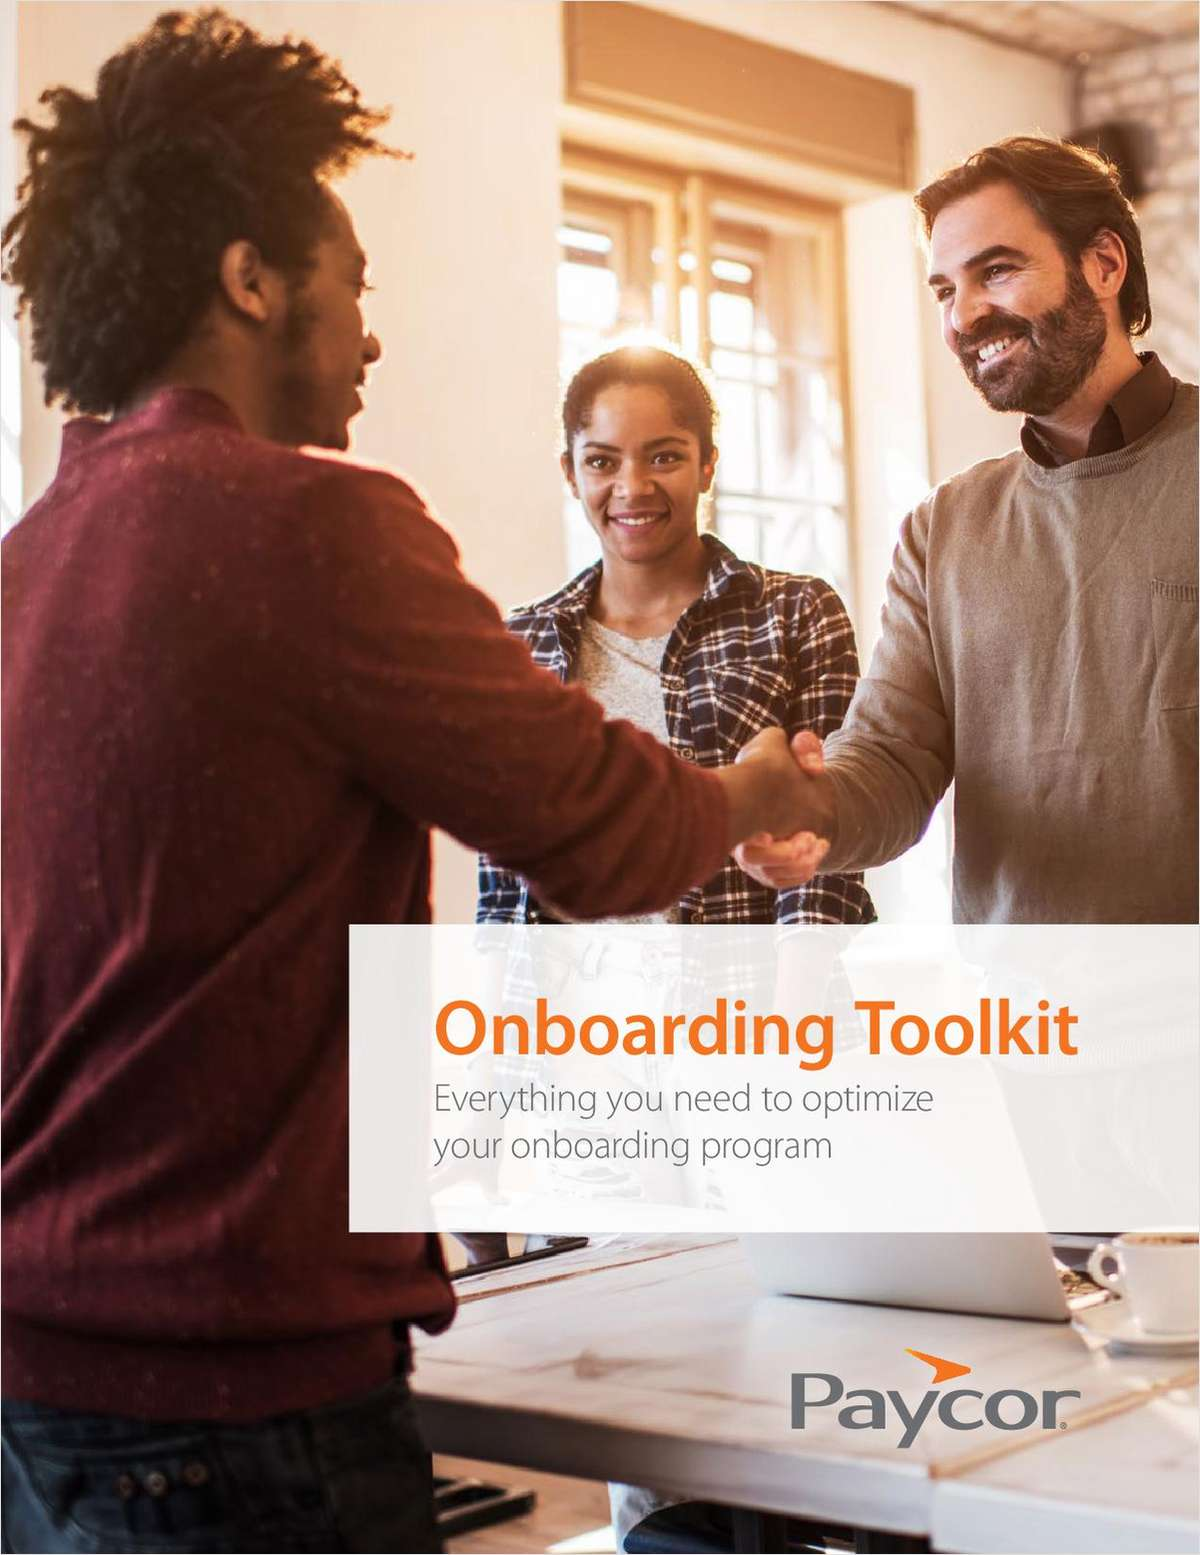 Onboarding Toolkit: Everything you Need to Optimize Your Onboarding Program